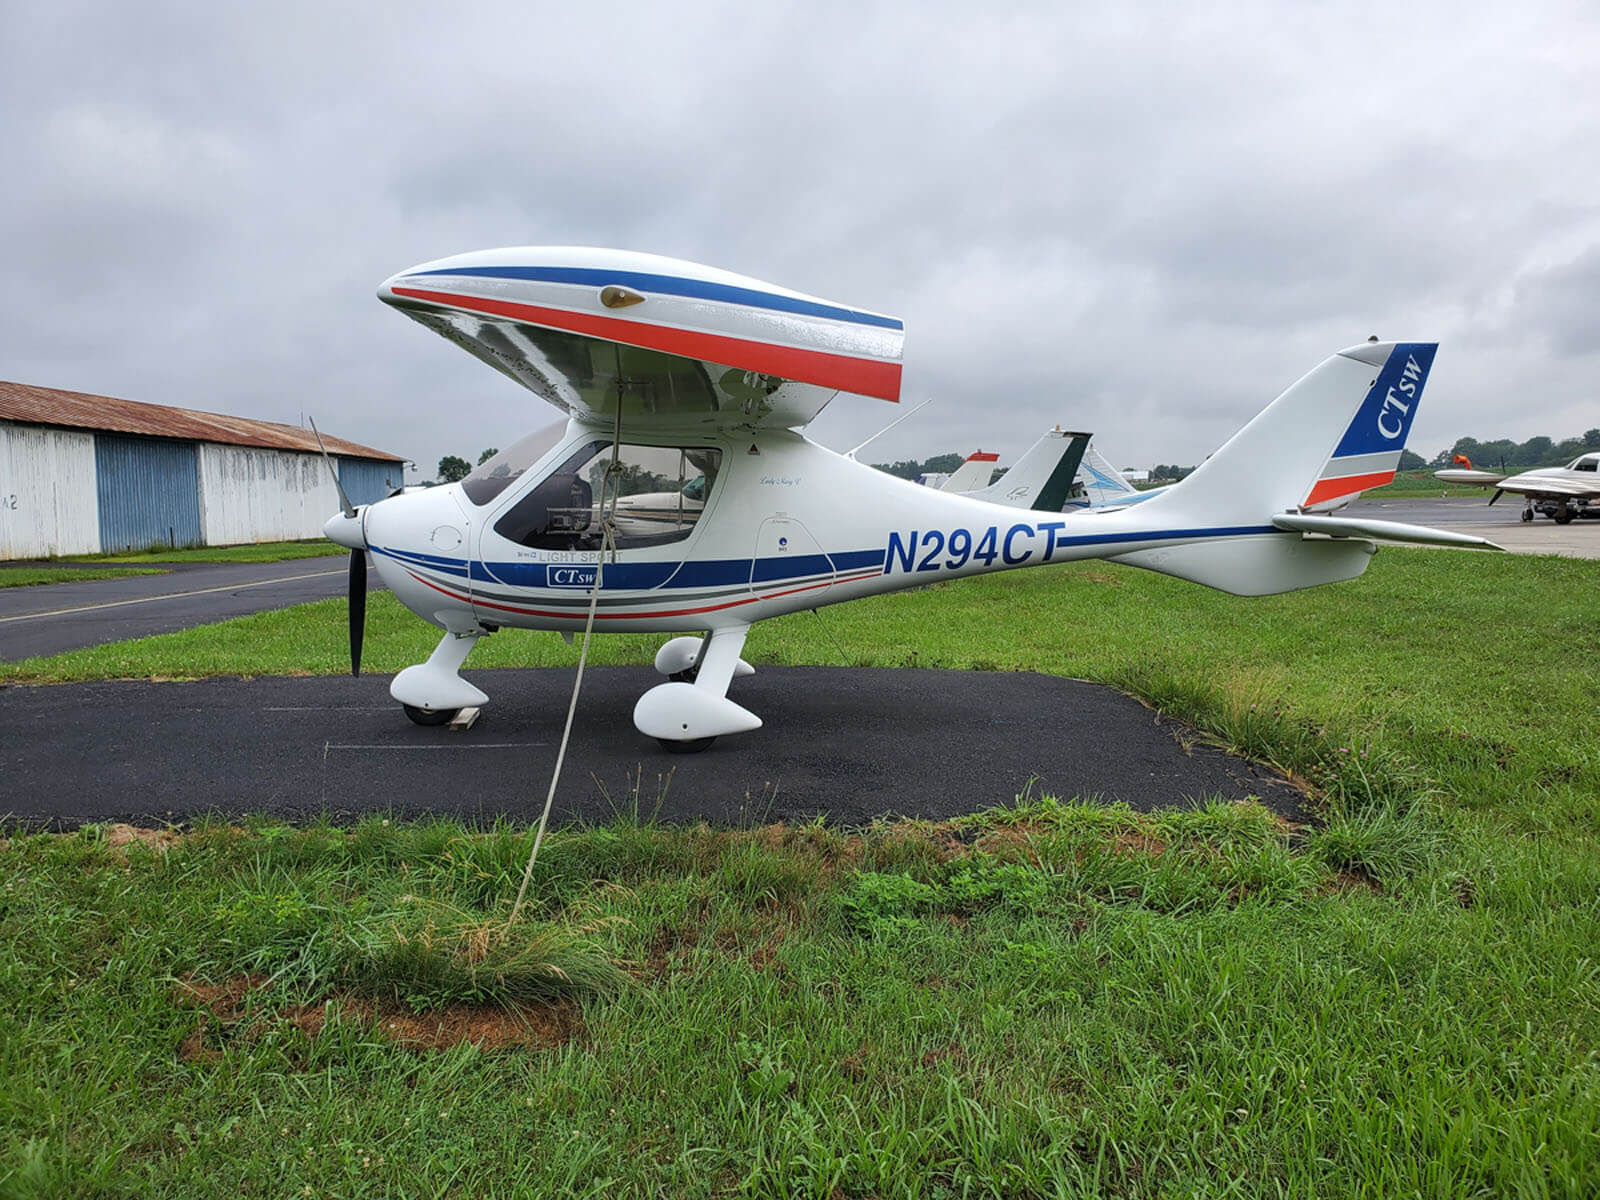 2007 CTSW - FOR SALE at Princeton Airport - Contact Ken Nierenberg at 609-731-4628 for details